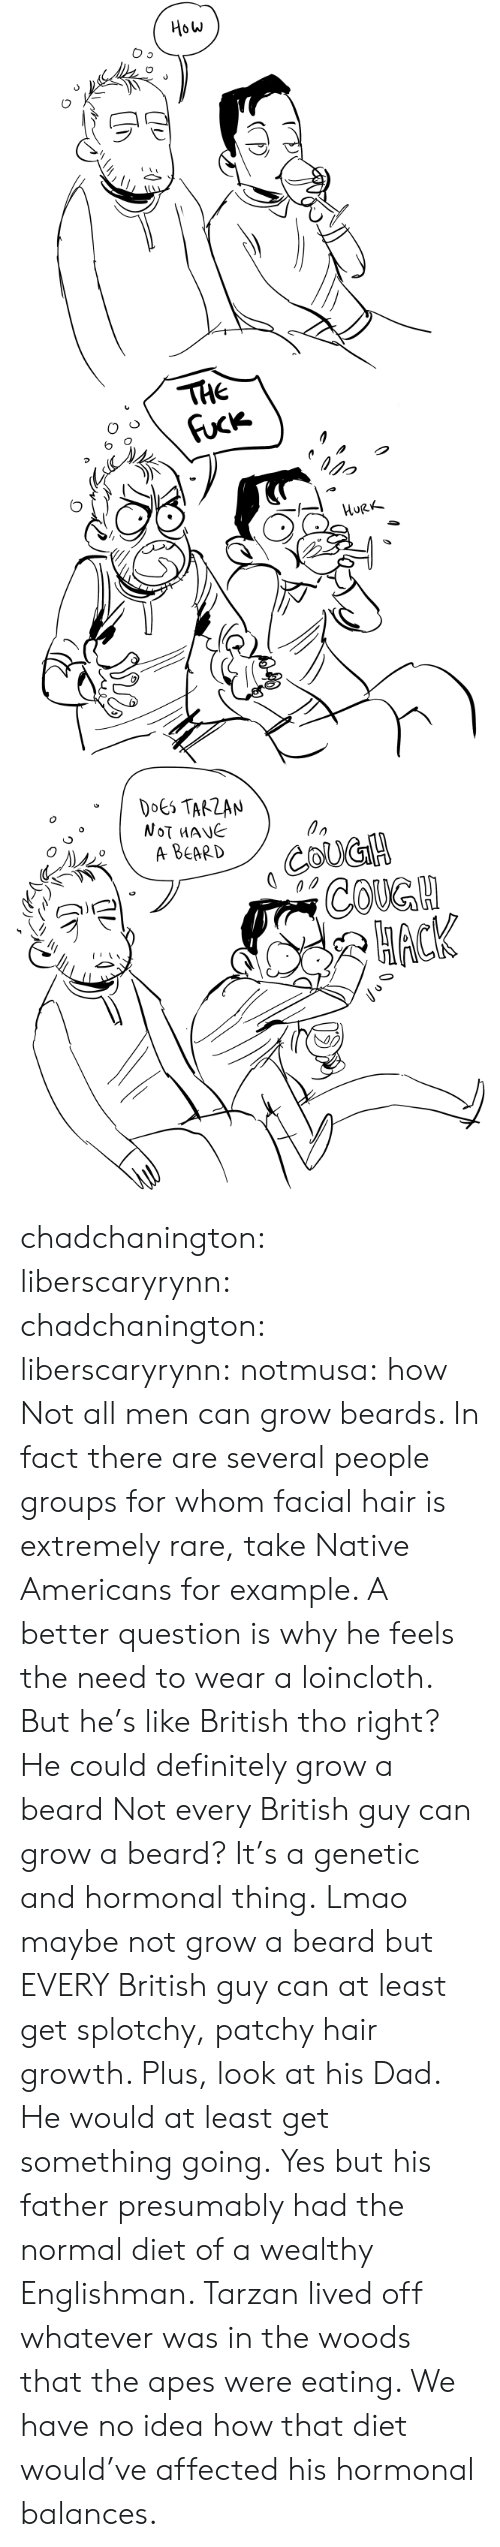 Beard, Dad, and Definitely: How  THE  Fuck  орo  HURK  DOES TARZAN  NOT MANE  A ВЕARD  COUGH  СOKGH  НАСК chadchanington:  liberscaryrynn:  chadchanington:  liberscaryrynn:  notmusa:  how  Not all men can grow beards. In fact there are several people groups for whom facial hair is extremely rare, take Native Americans for example. A better question is why he feels the need to wear a loincloth.  But he's like British tho right? He could definitely grow a beard  Not every British guy can grow a beard? It's a genetic and hormonal thing.  Lmao maybe not grow a beard but EVERY British guy can at least get splotchy, patchy hair growth. Plus, look at his Dad. He would at least get something going.  Yes but his father presumably had the normal diet of a wealthy Englishman. Tarzan lived off whatever was in the woods that the apes were eating. We have no idea how that diet would've affected his hormonal balances.